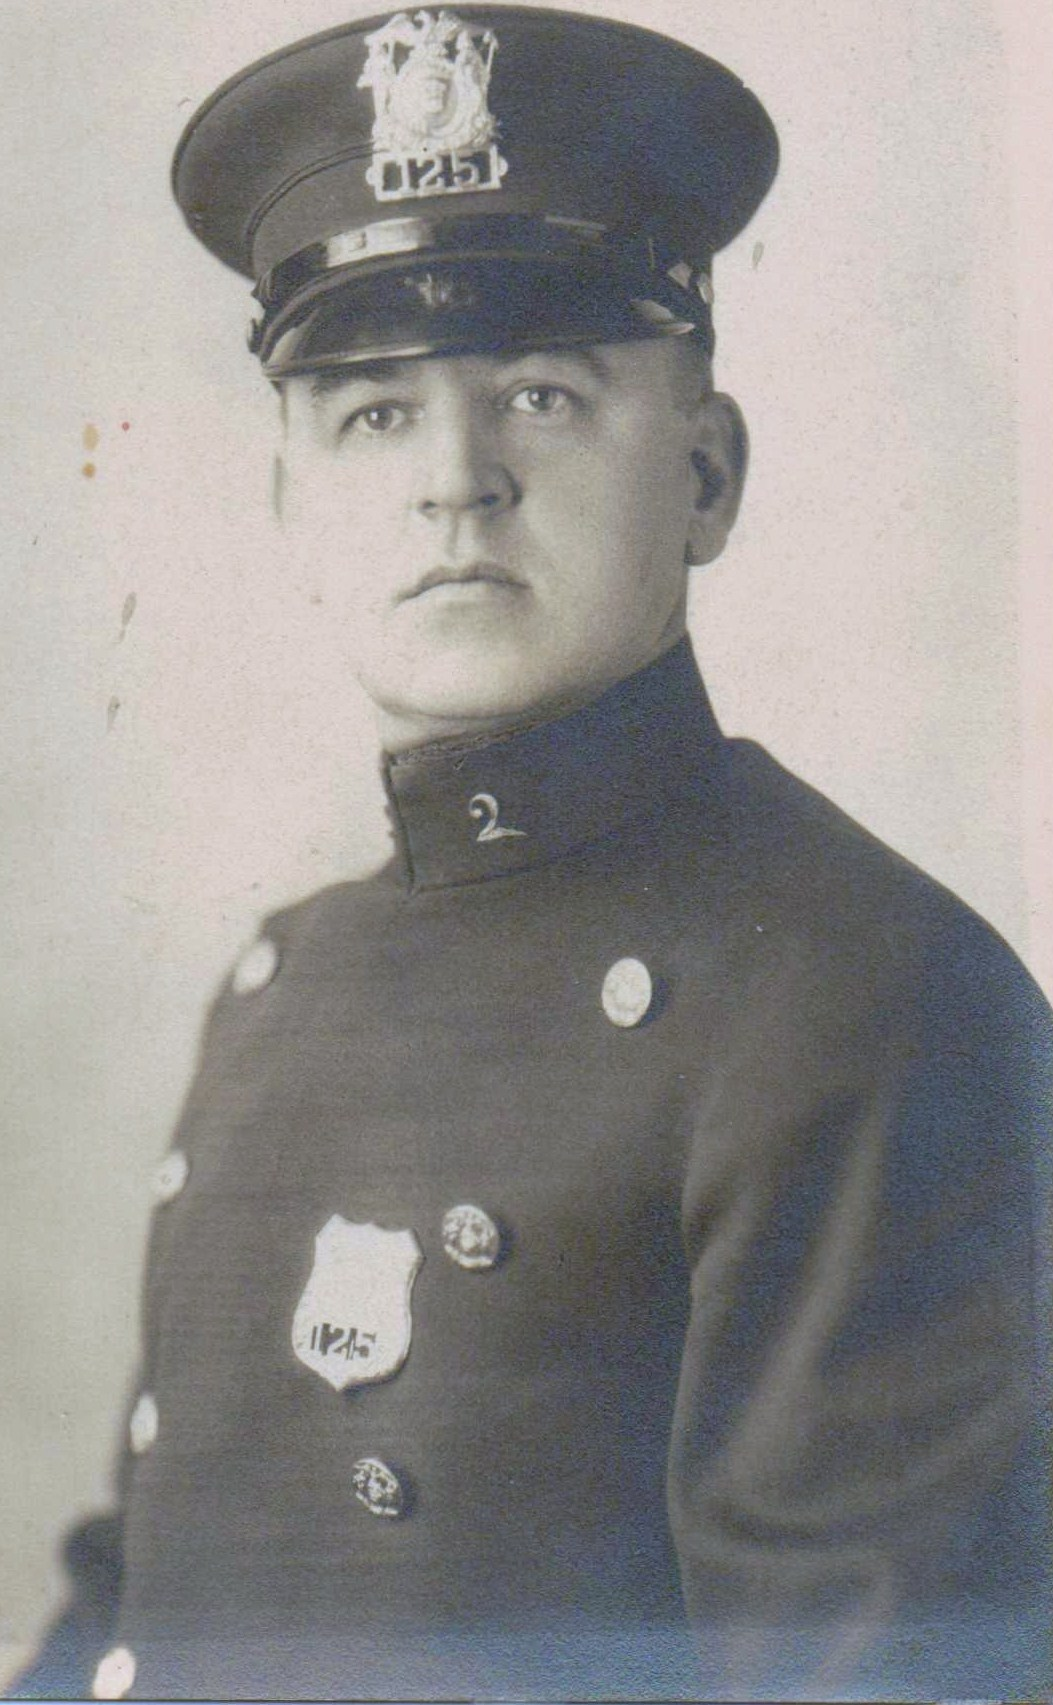 Patrolman Frank A. Quinlivan | Schenectady Police Department, New York